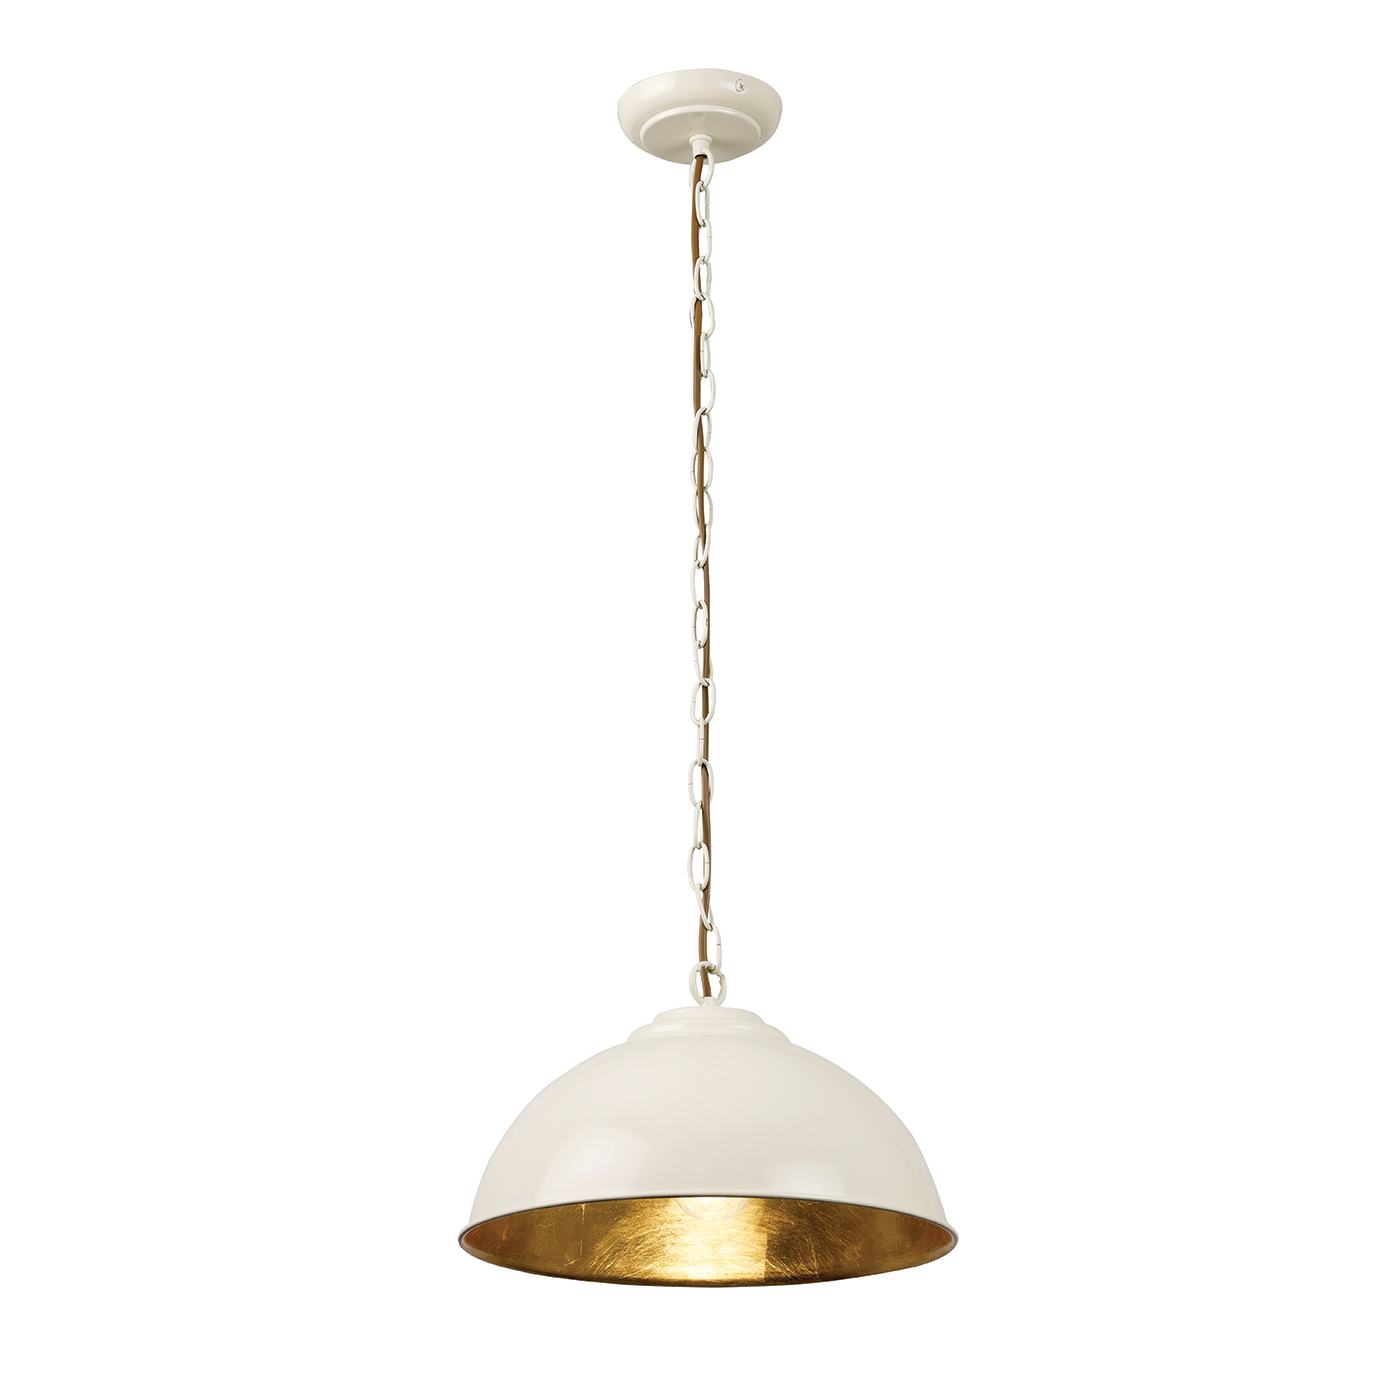 Endon Colman pendant 1x 60W Gloss cream paint & gold leaf